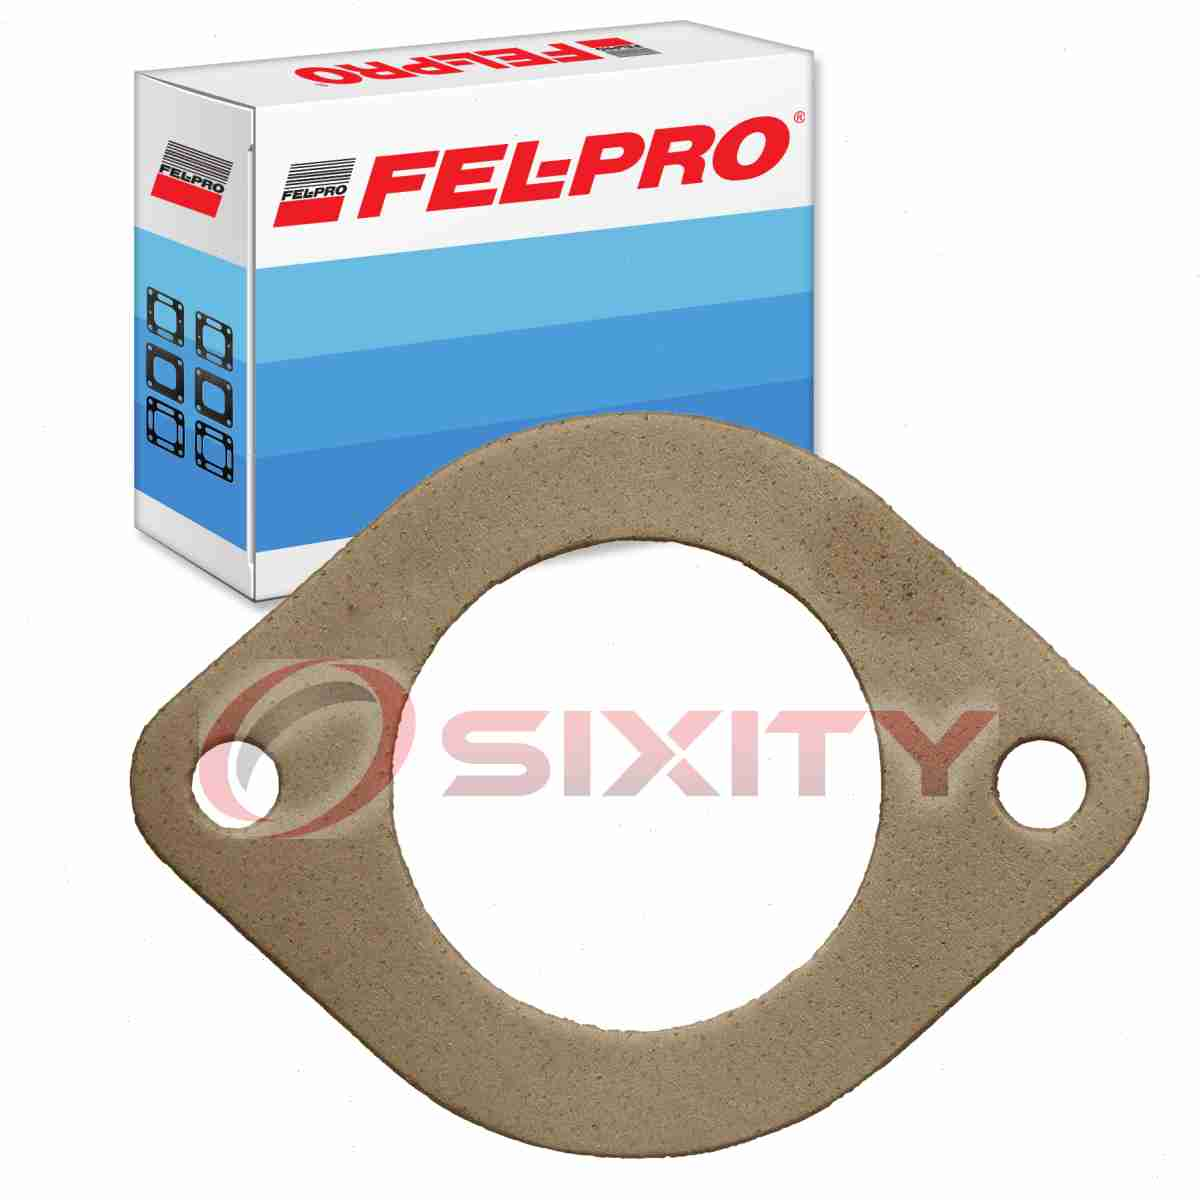 Fel-Pro Exhaust Pipe Flange Gasket for 1987-2001 Toyota Camry FelPro kp